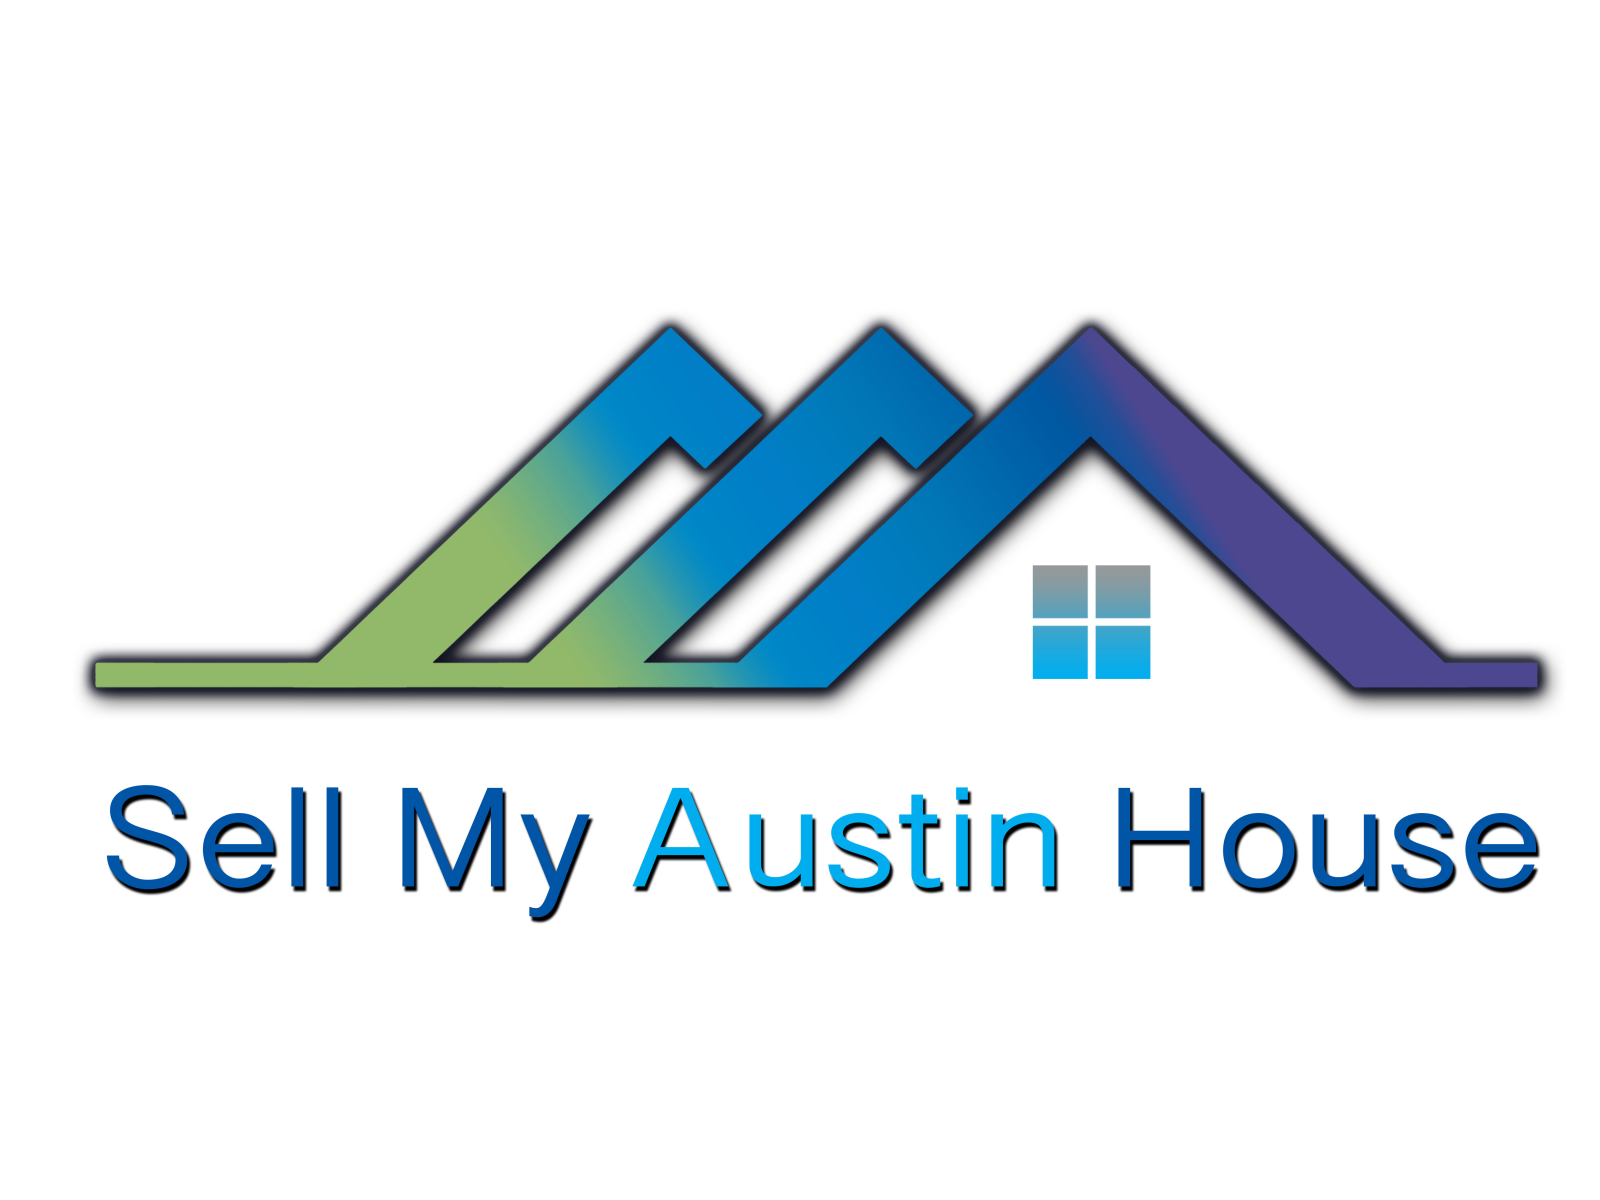 Sell My Austin House  logo